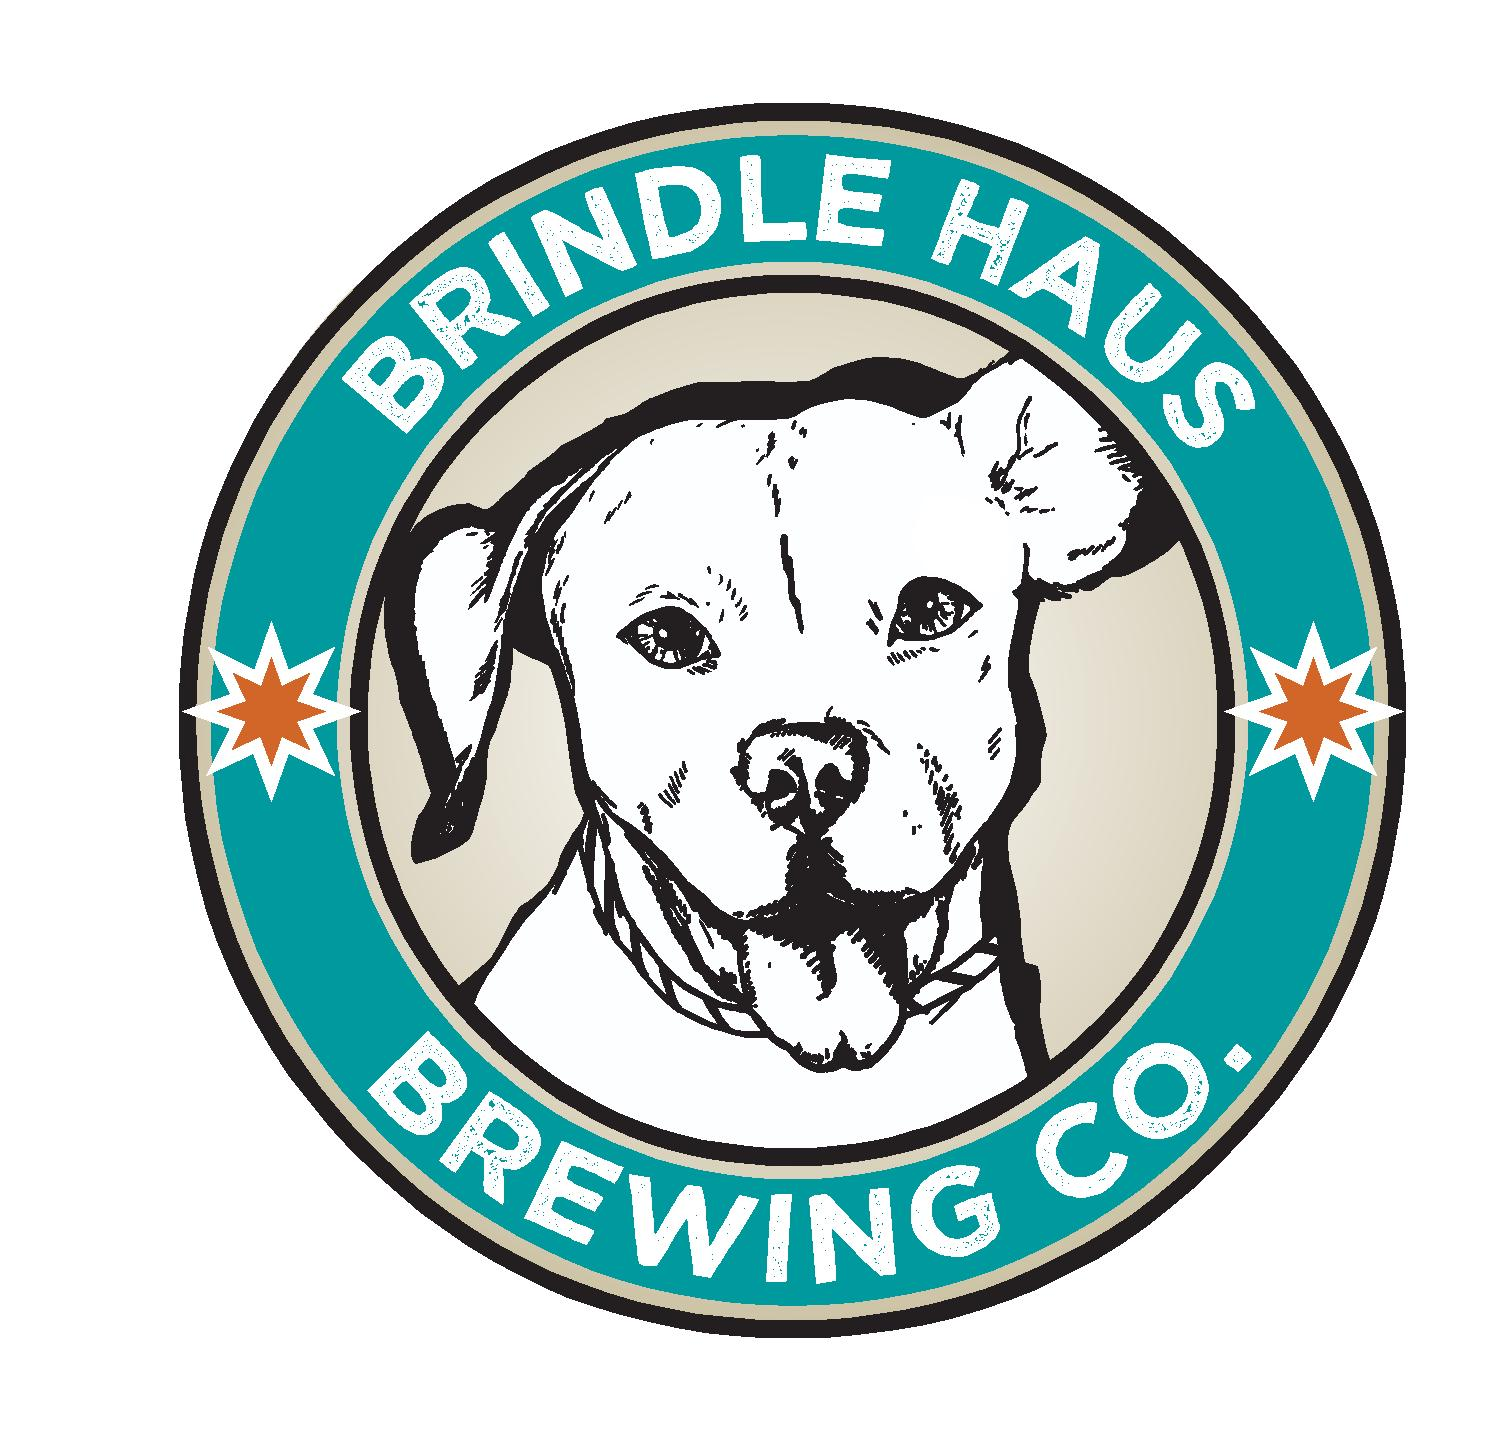 Brindle Haus Brewing Co.